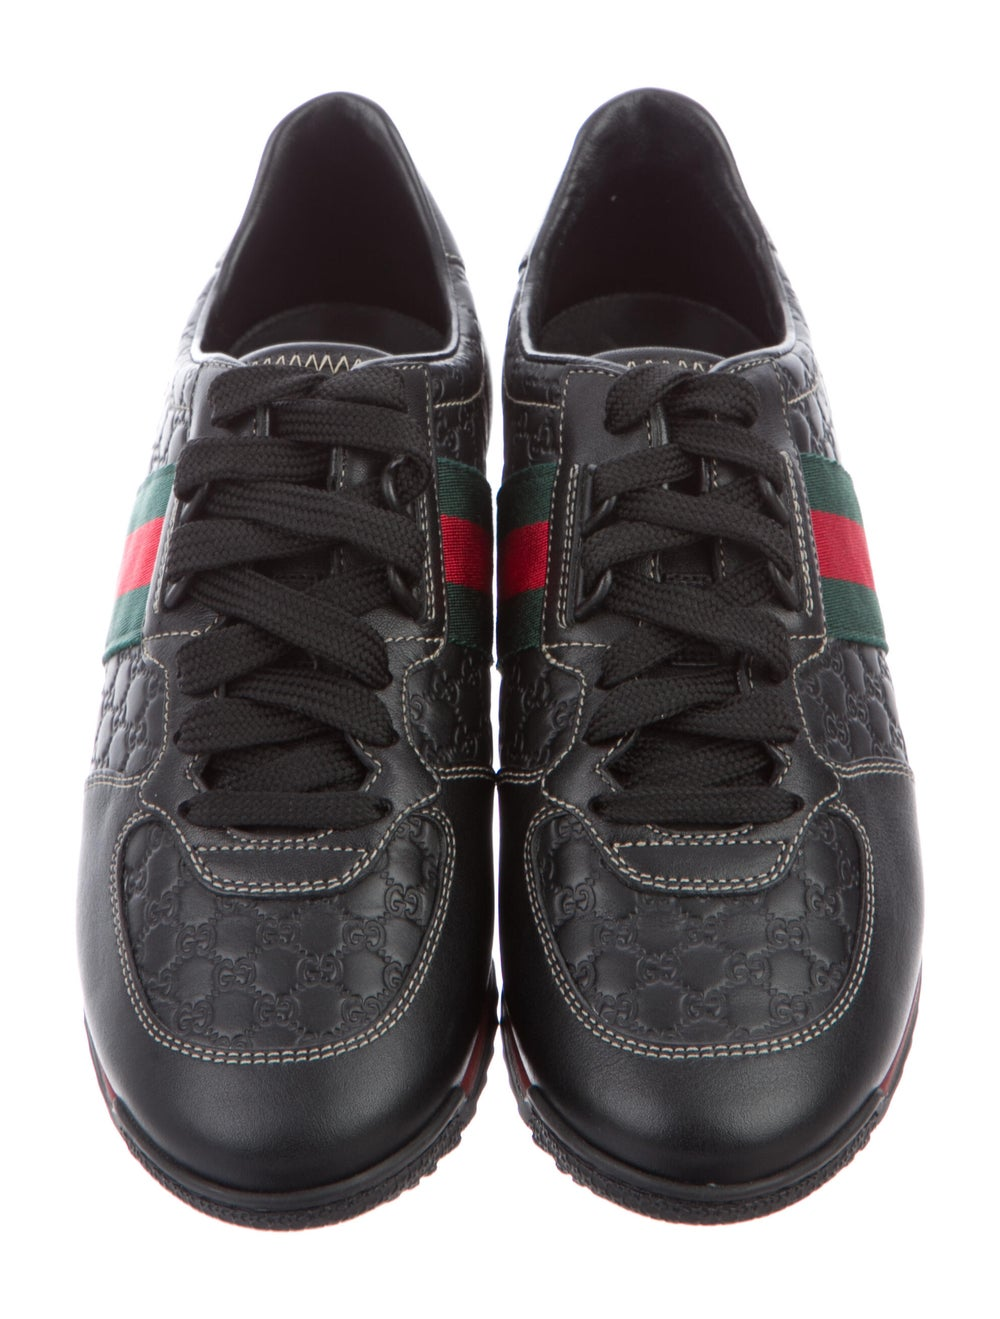 Gucci Web Accent Leather Sneakers Black - image 3